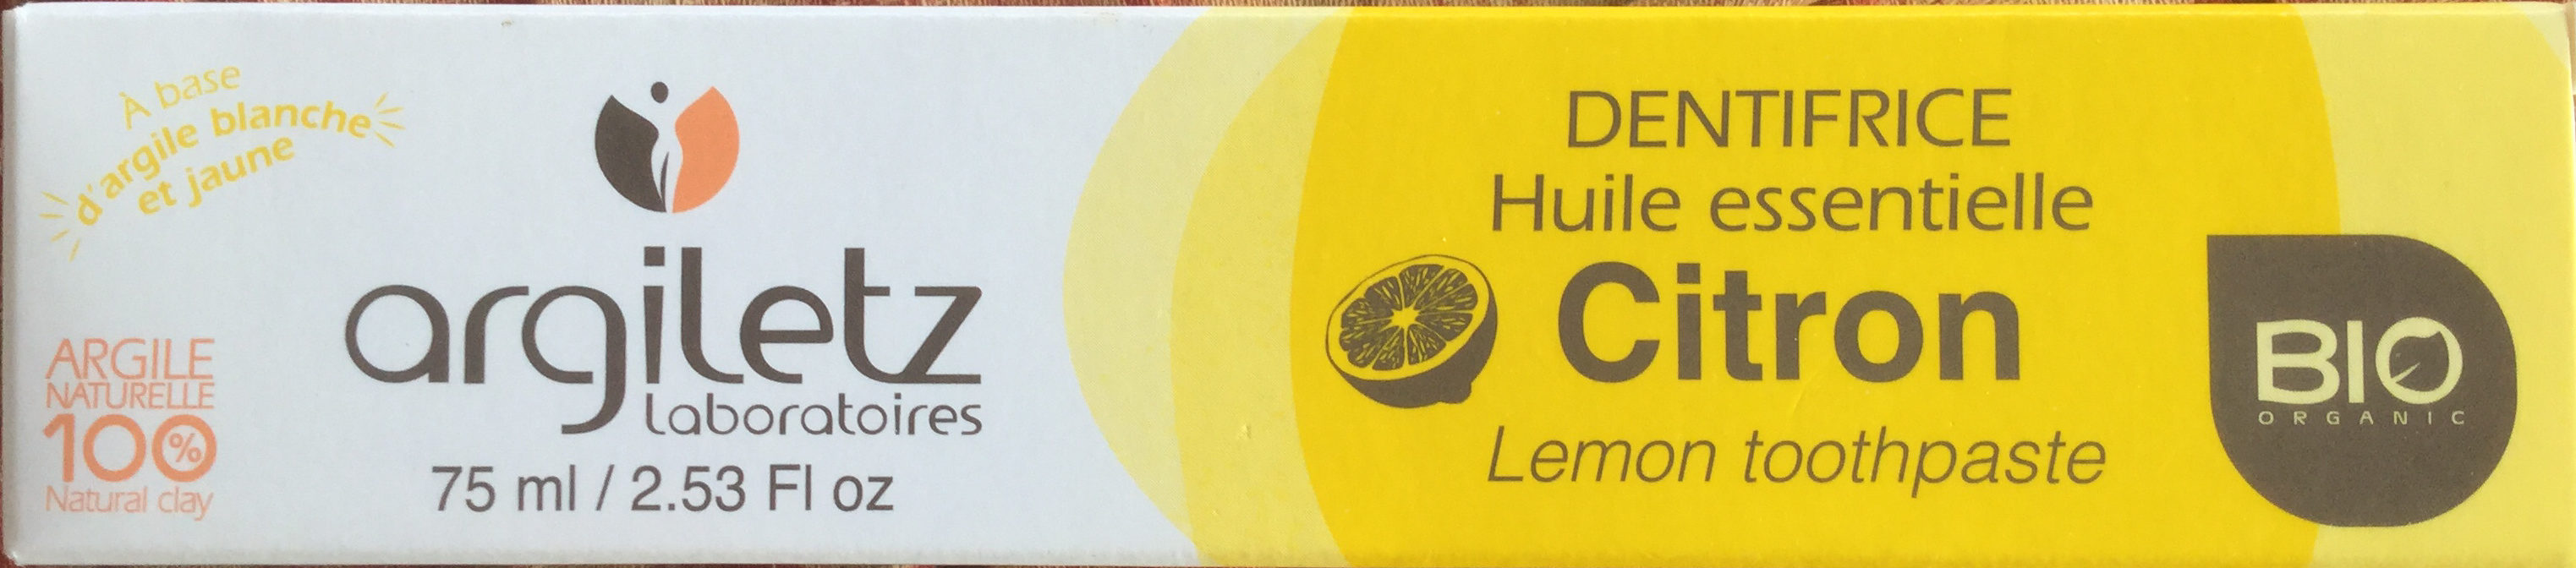 Dentifrice huile essentielle citron - Product - fr